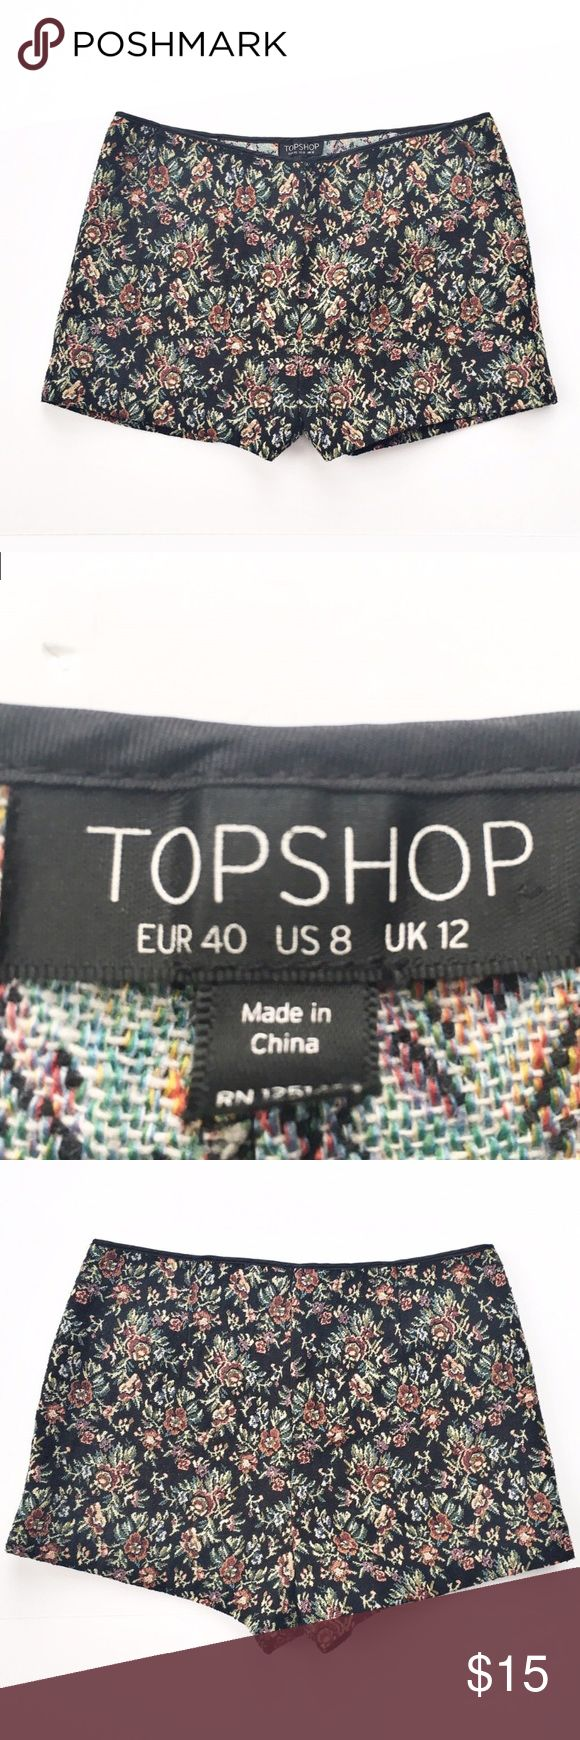 "Topshop floral shorts Floral print tapestry shorts from Topshop, size 8. Excellent condition. Flat measurements waist: 16"", hips: 18"", length: 11"", inseam: 2.5"". Topshop Shorts"